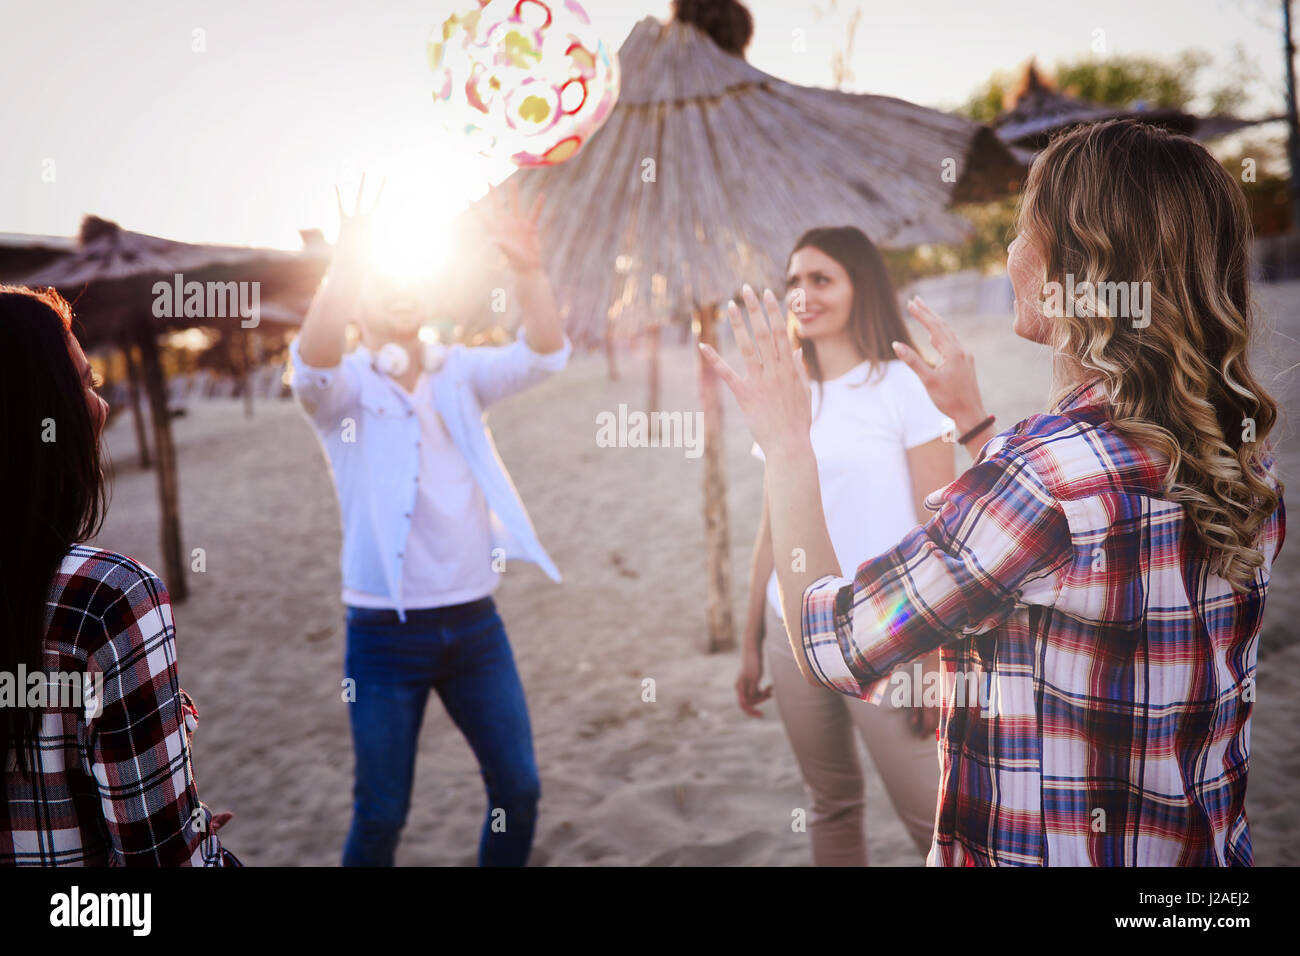 Group of happy young people enjoying summer vacation on beach - Stock Image